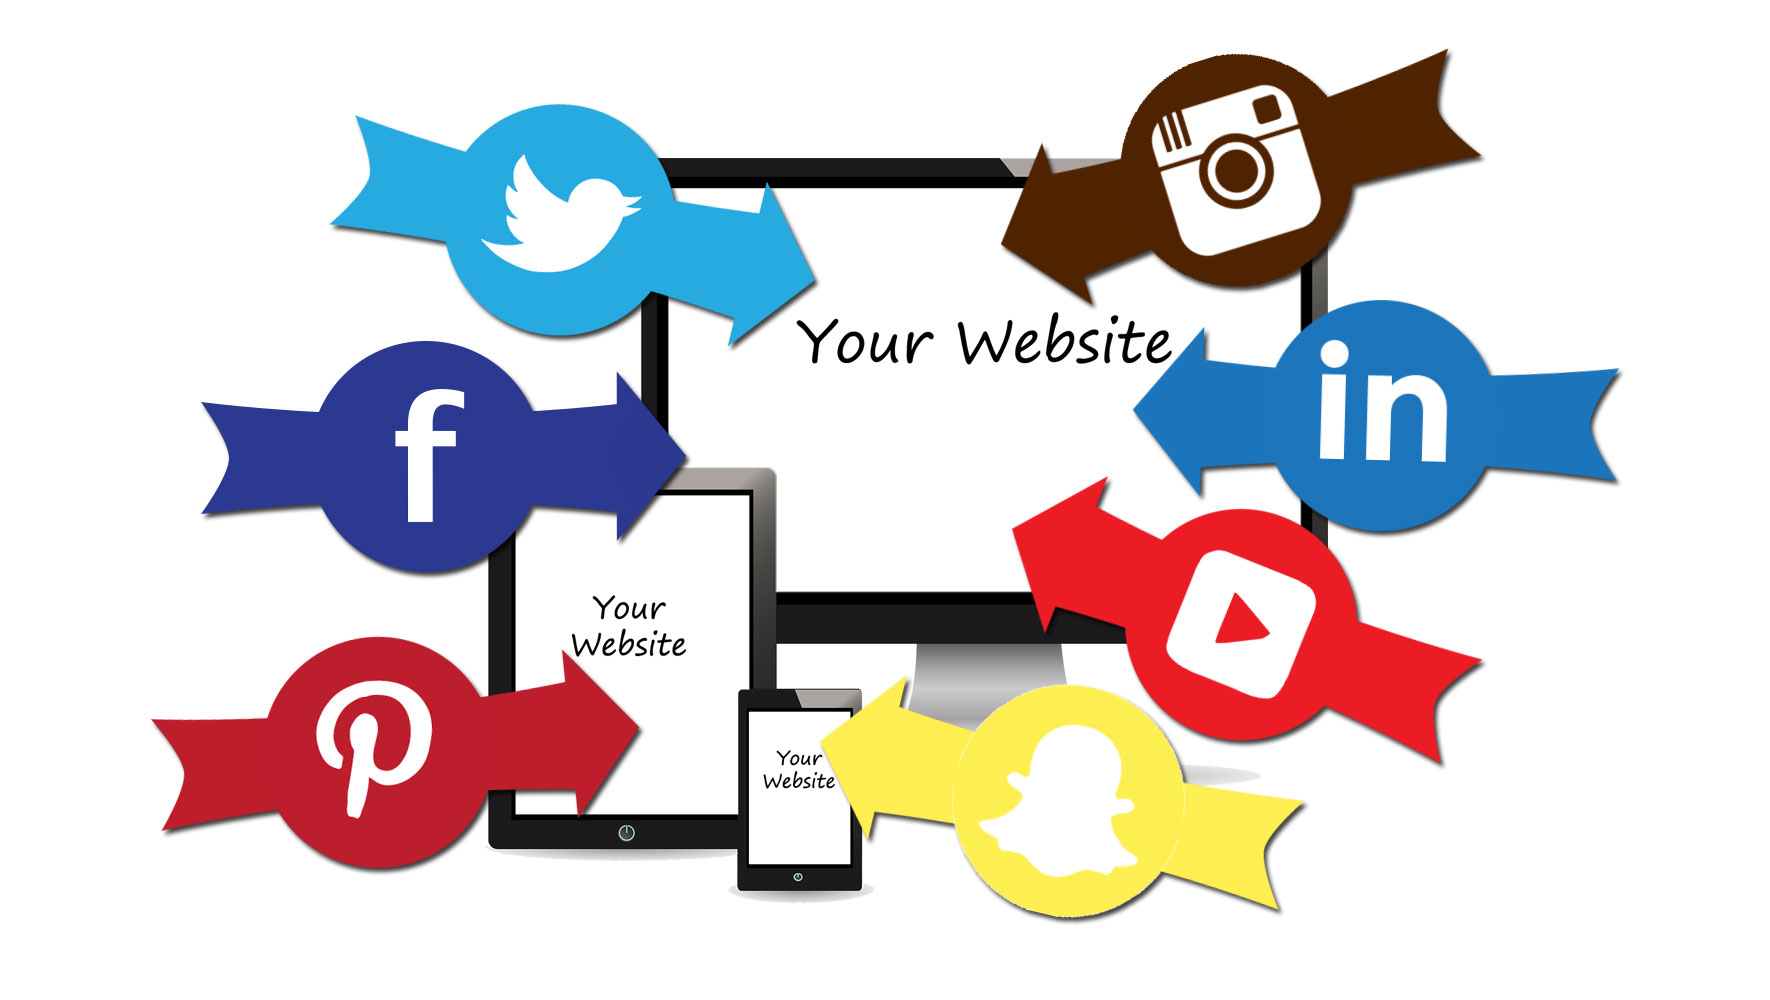 Social media can bring more customers to your business